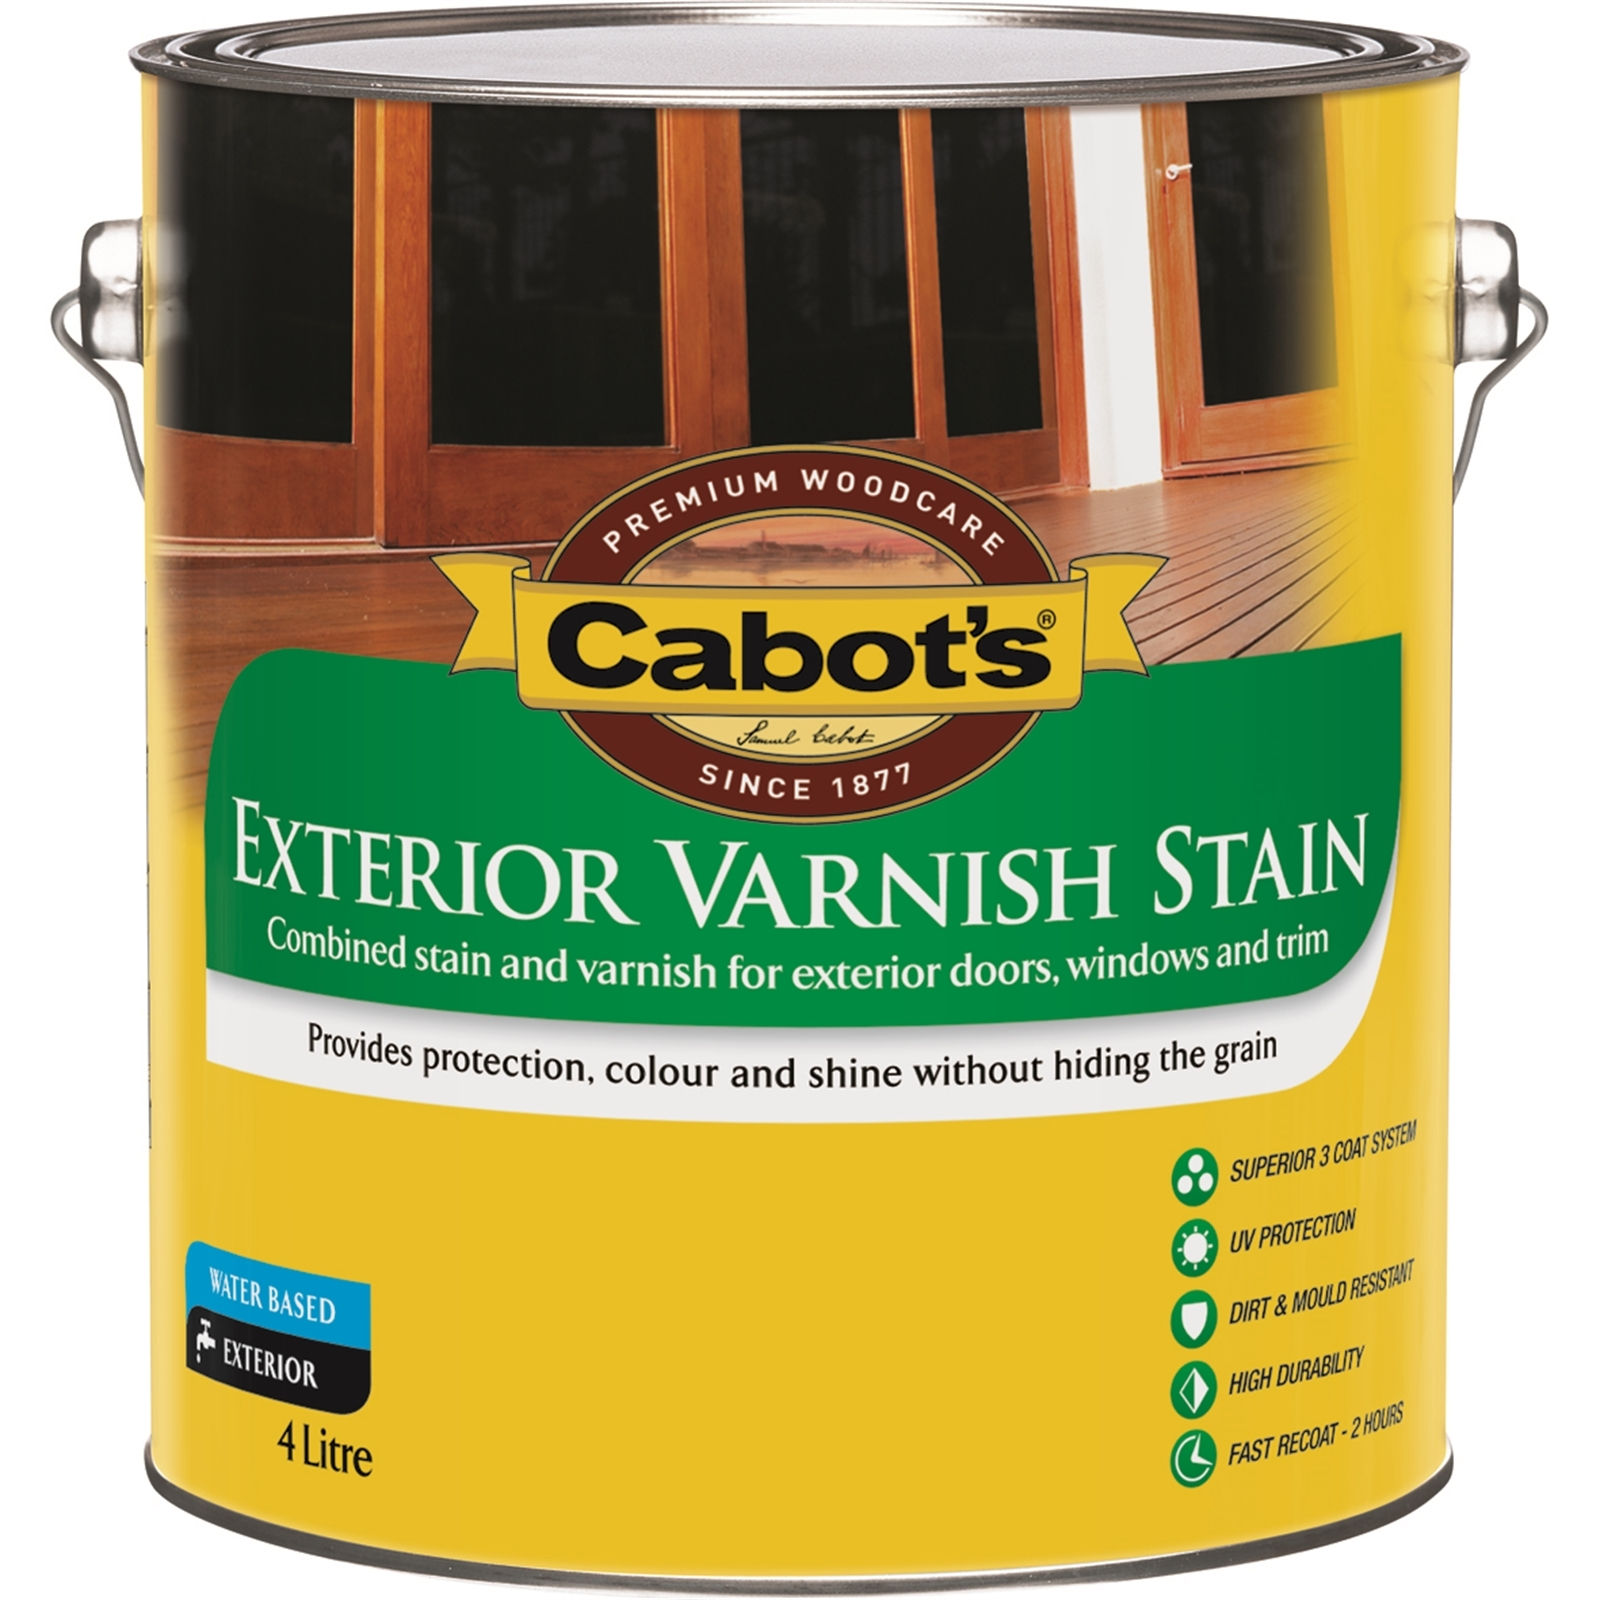 Cabot's 4L Tint Base Water Based External Varnish Stain